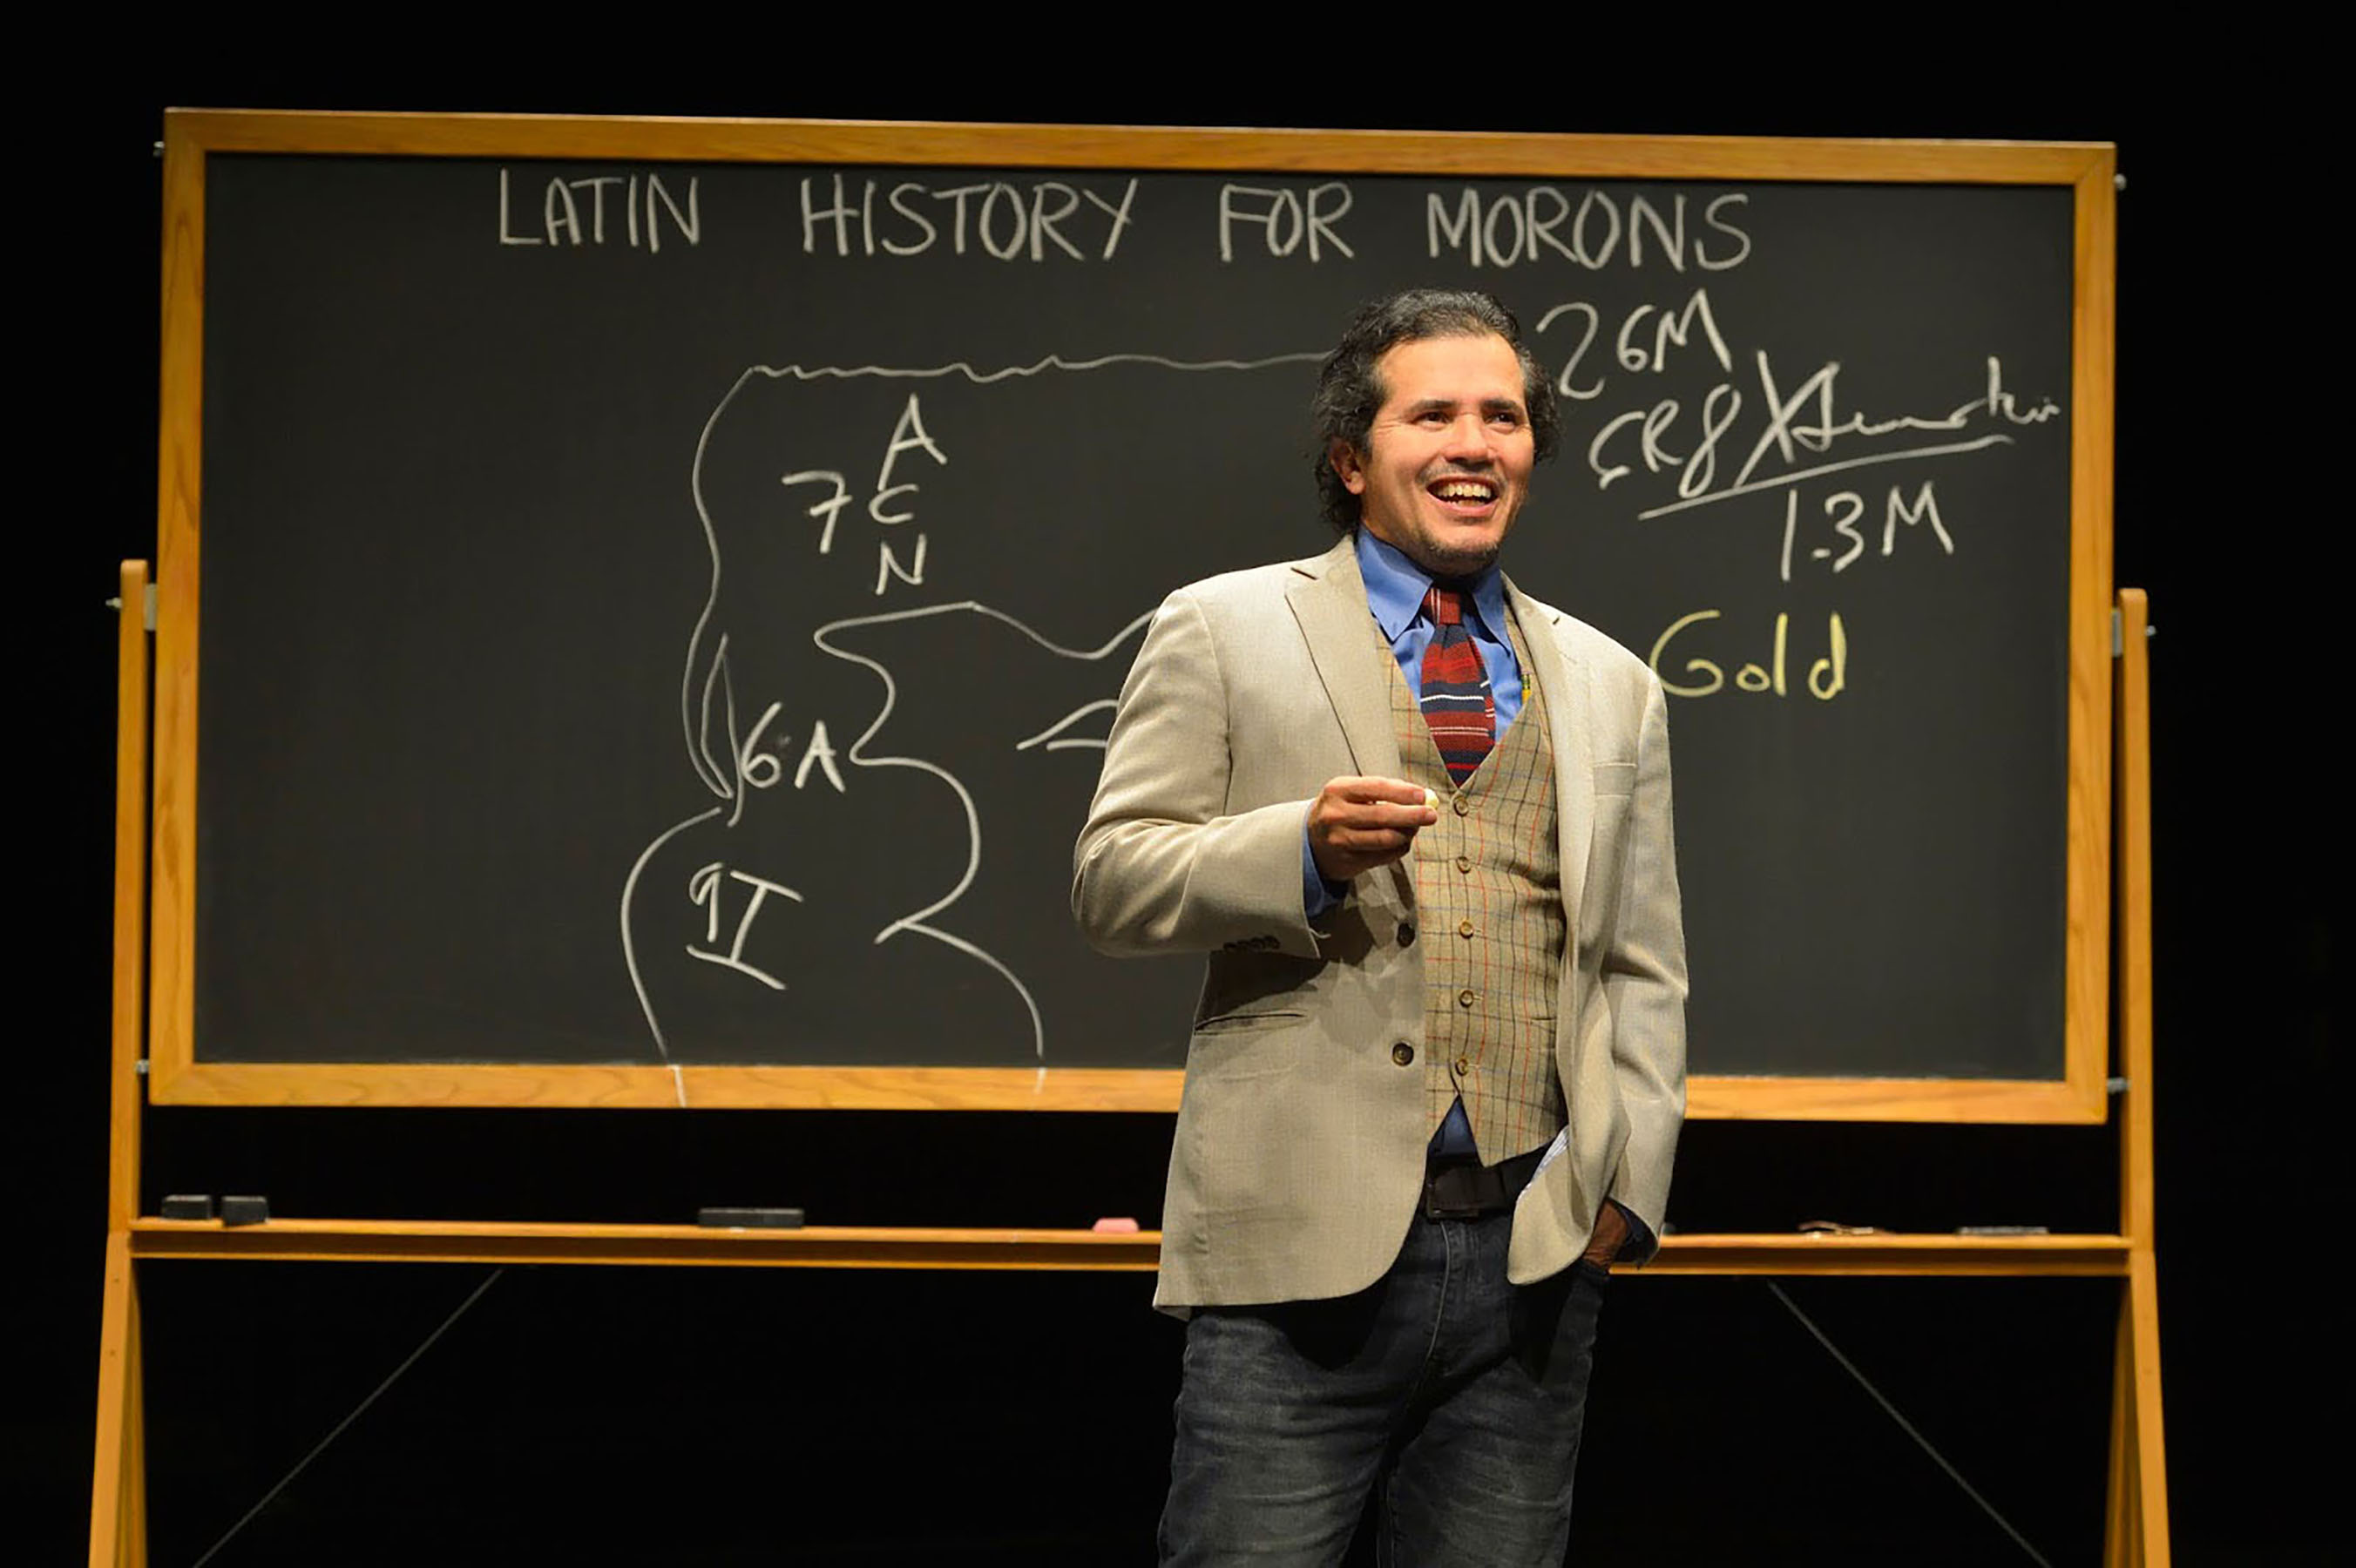 CLIP: This Doc Takes You Behind the Scenes of John Leguizamo's Broadway Show 'Latin History for Morons'